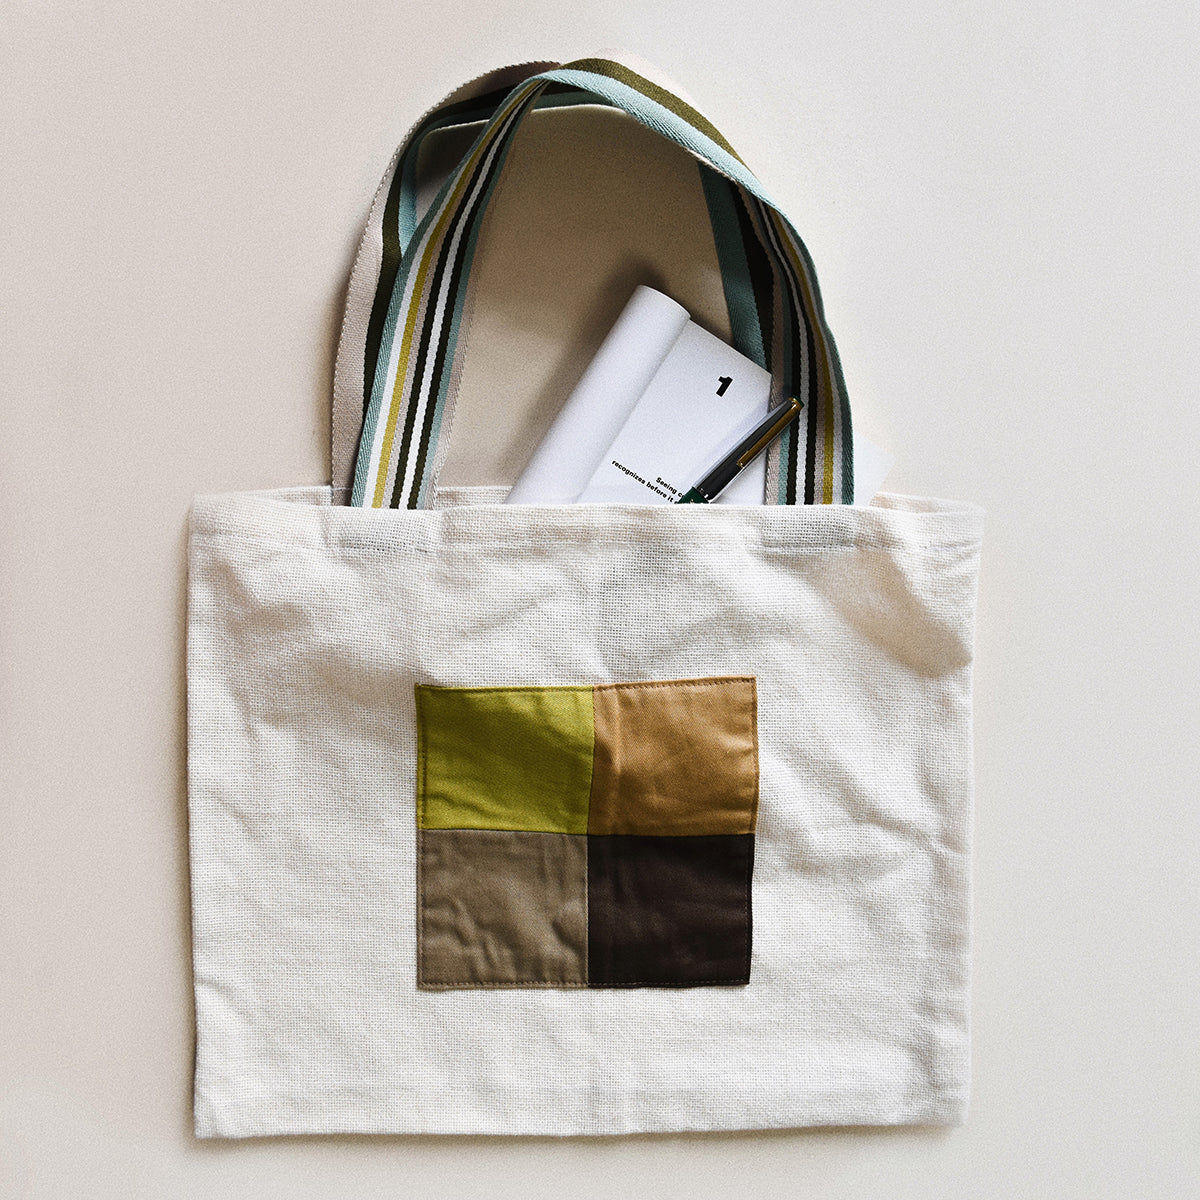 Tote bag with patchwork | Sewing project © Singer® Hong Kong